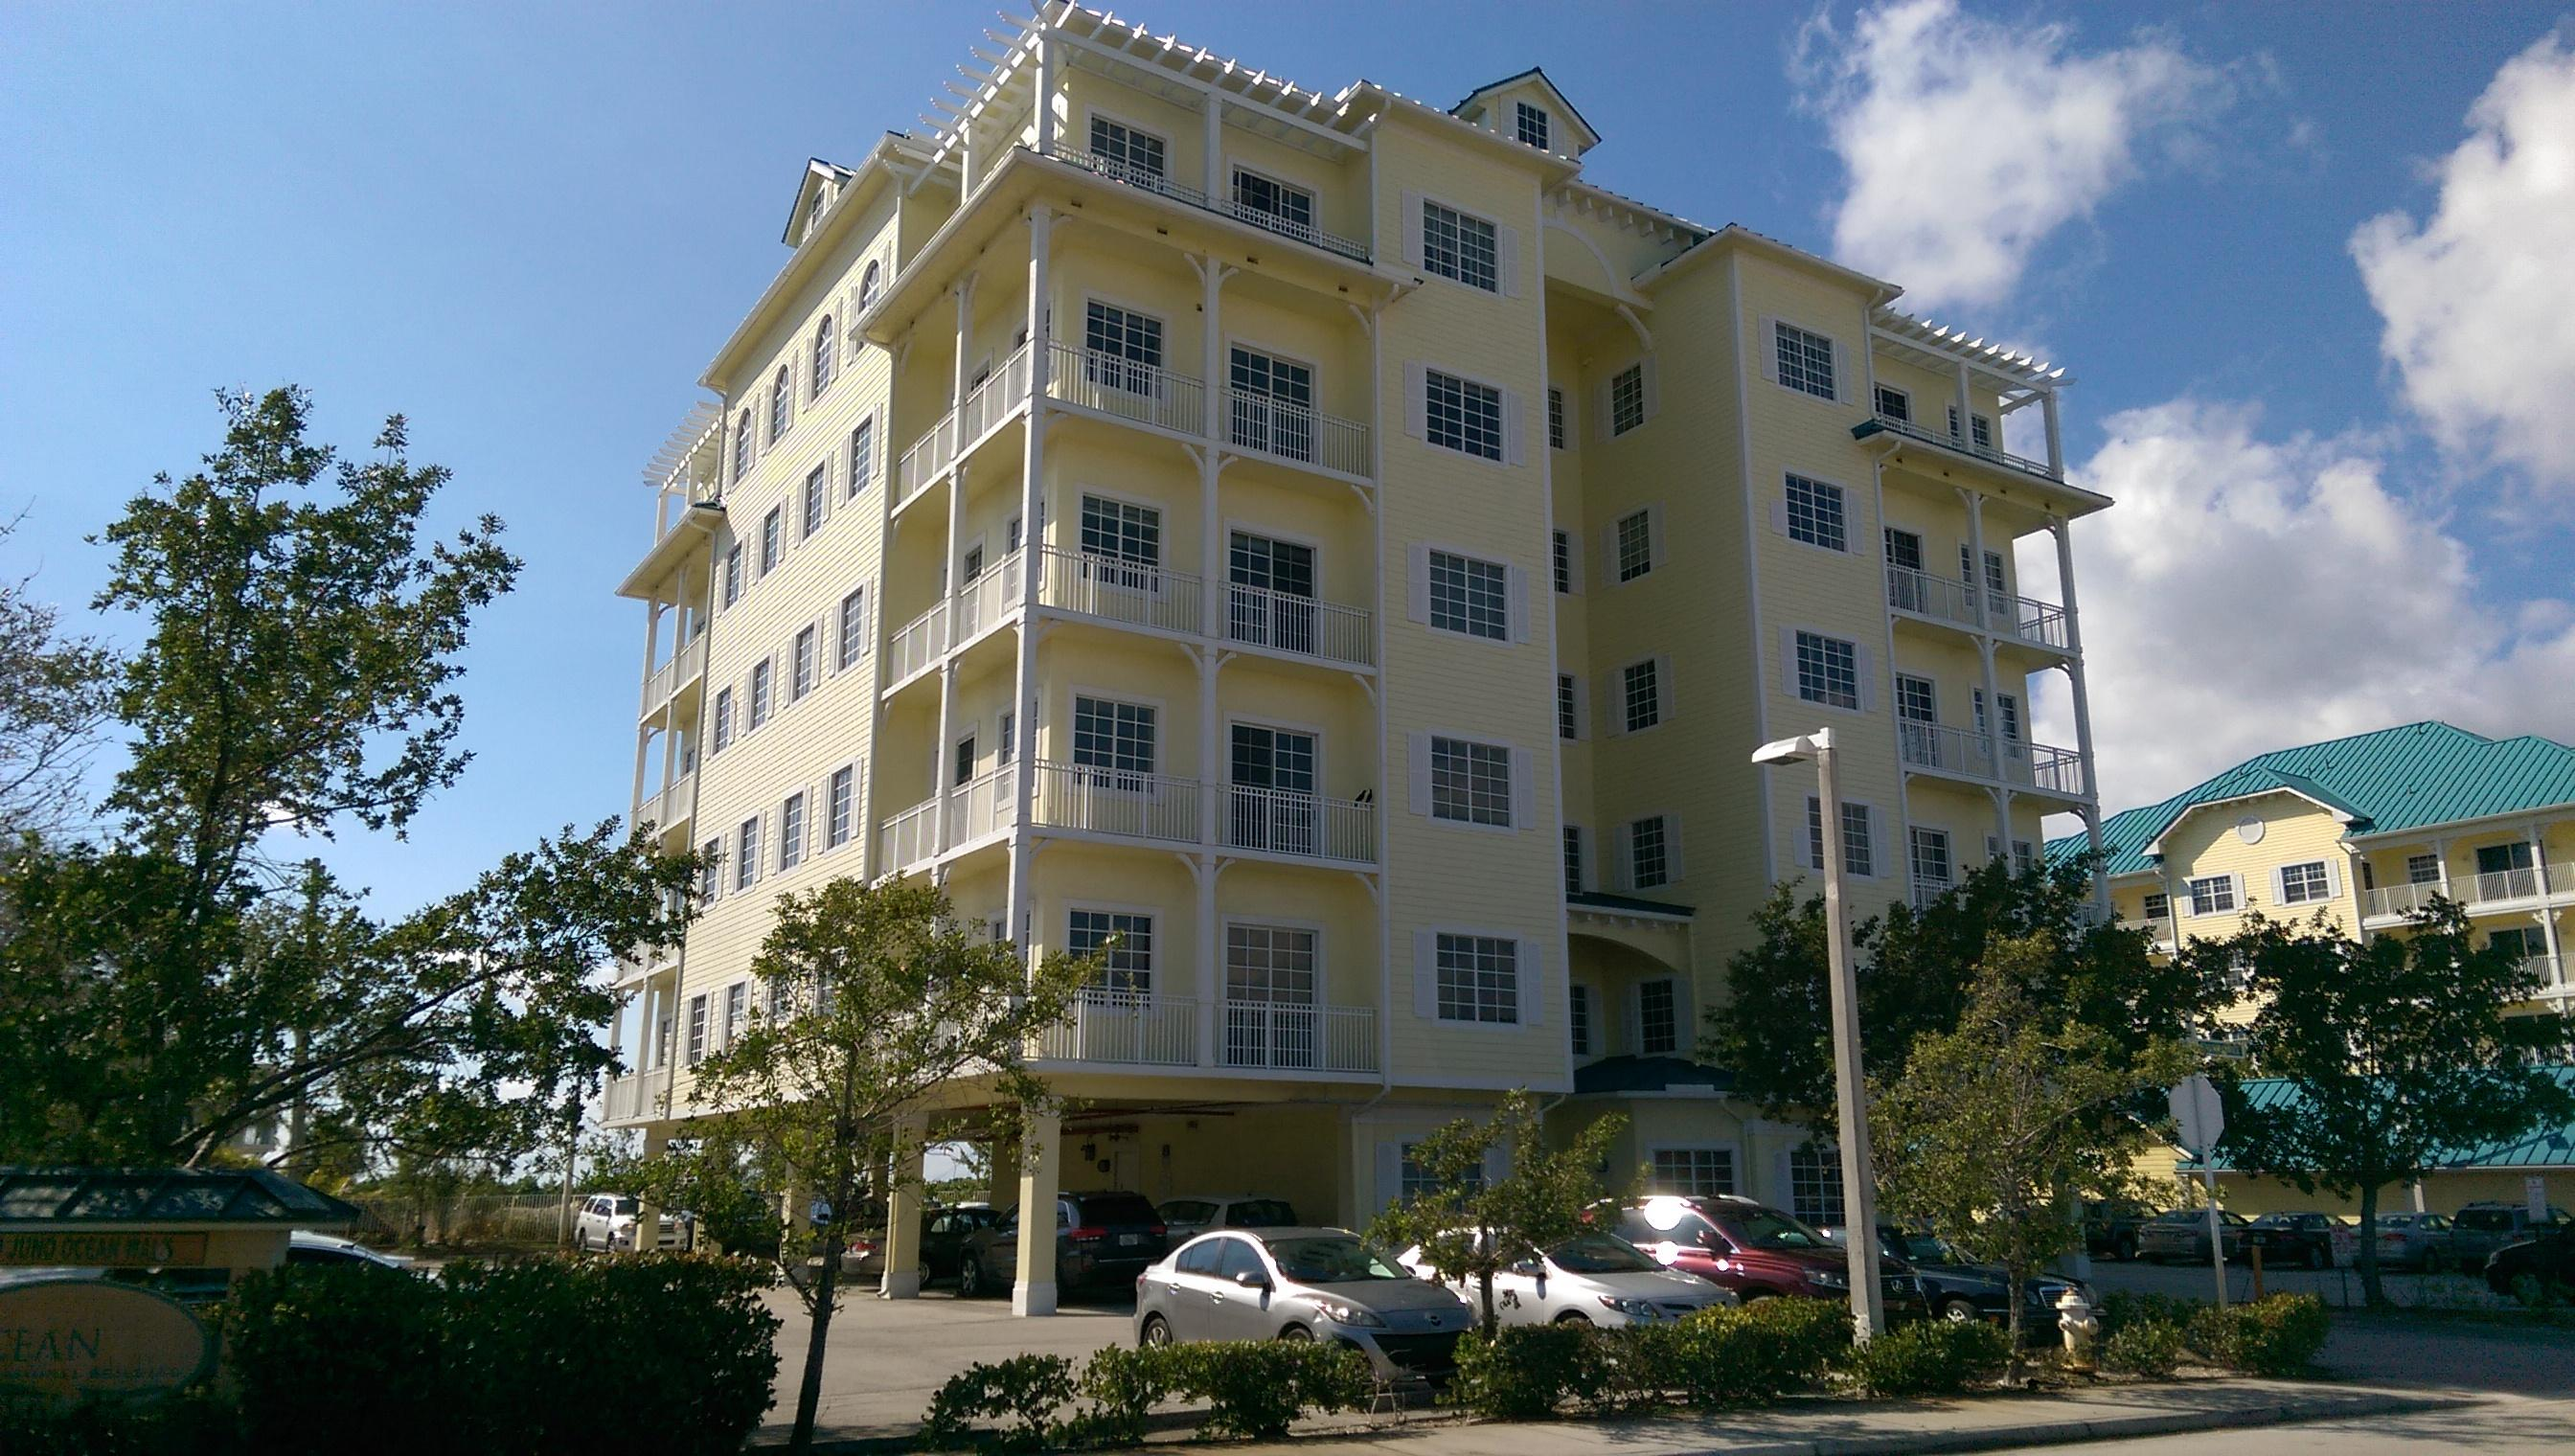 790 Juno Ocean Walk Unit 102c, Juno Beach, Florida 33408